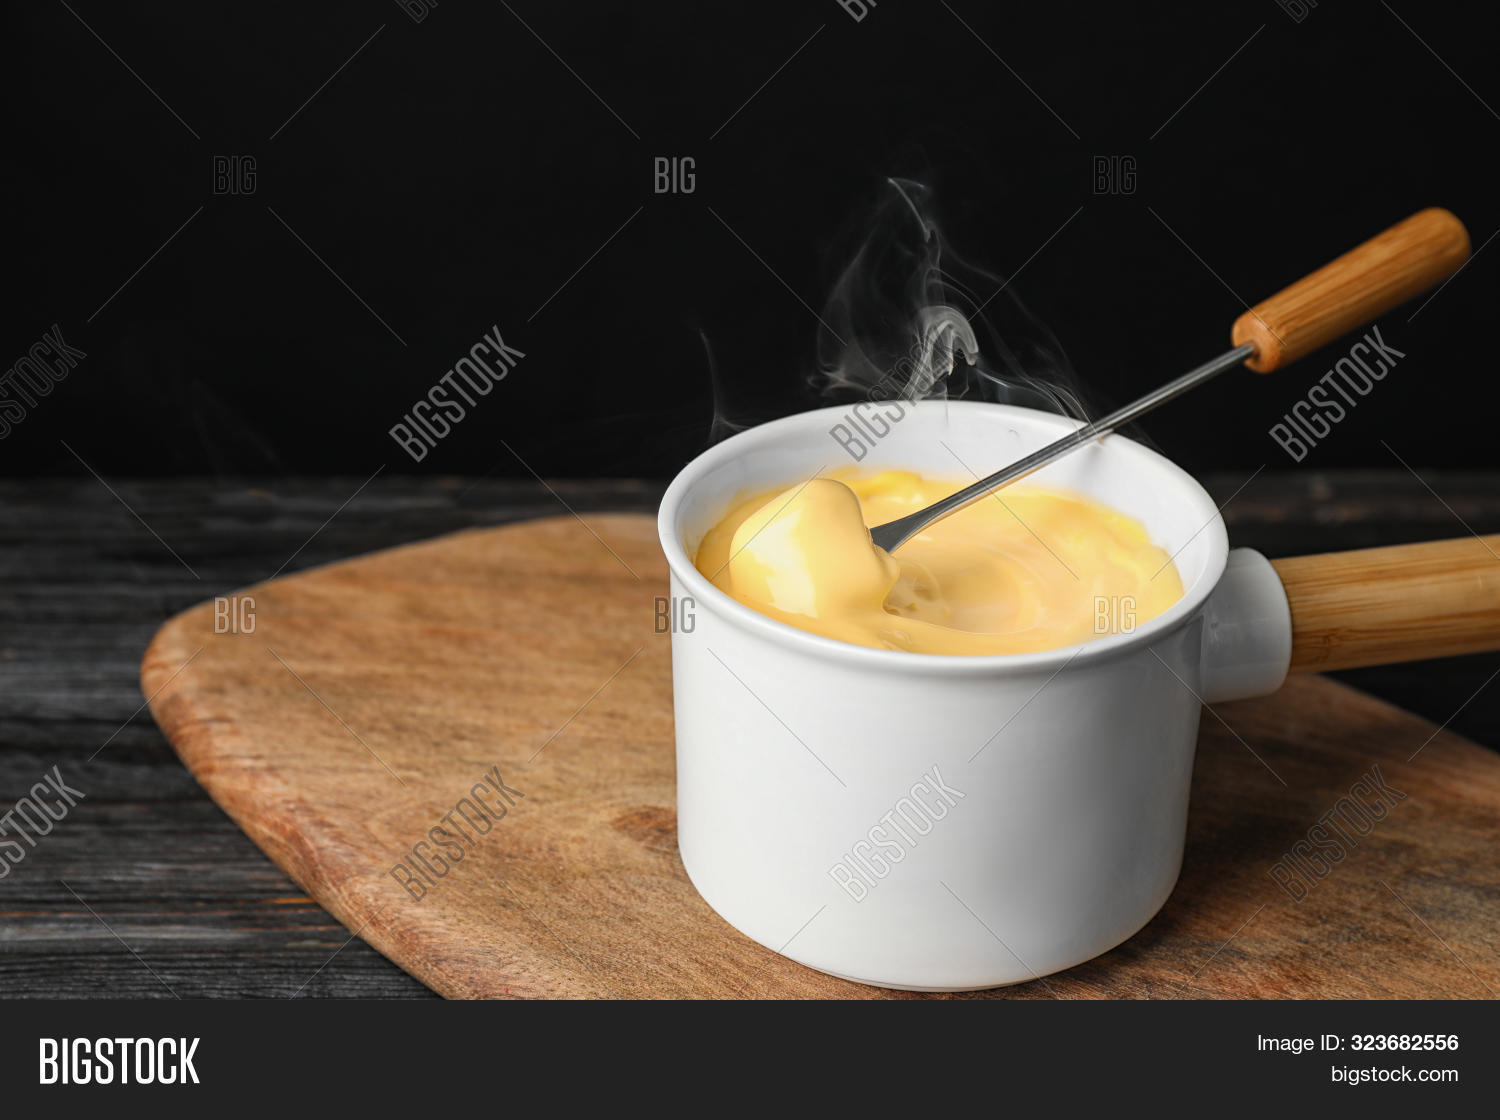 Pot Of Tasty Cheese Fondue And Fork With Bread On Black Wooden Table